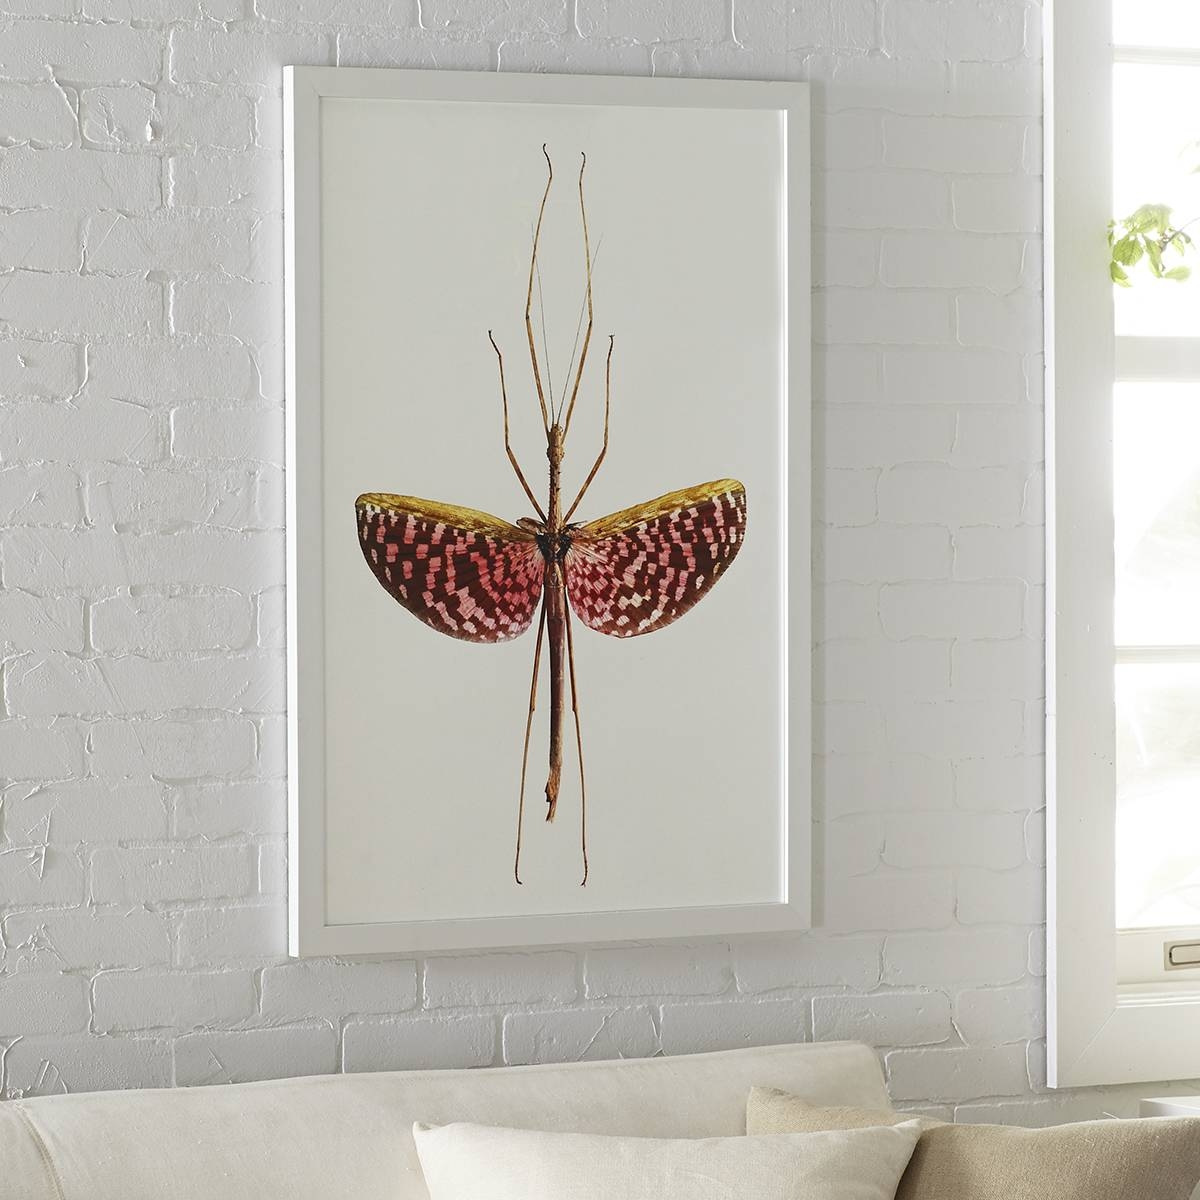 Stick Insect Wall Art – Speckled | Wisteria In Most Up To Date Insect Wall Art (Gallery 1 of 30)